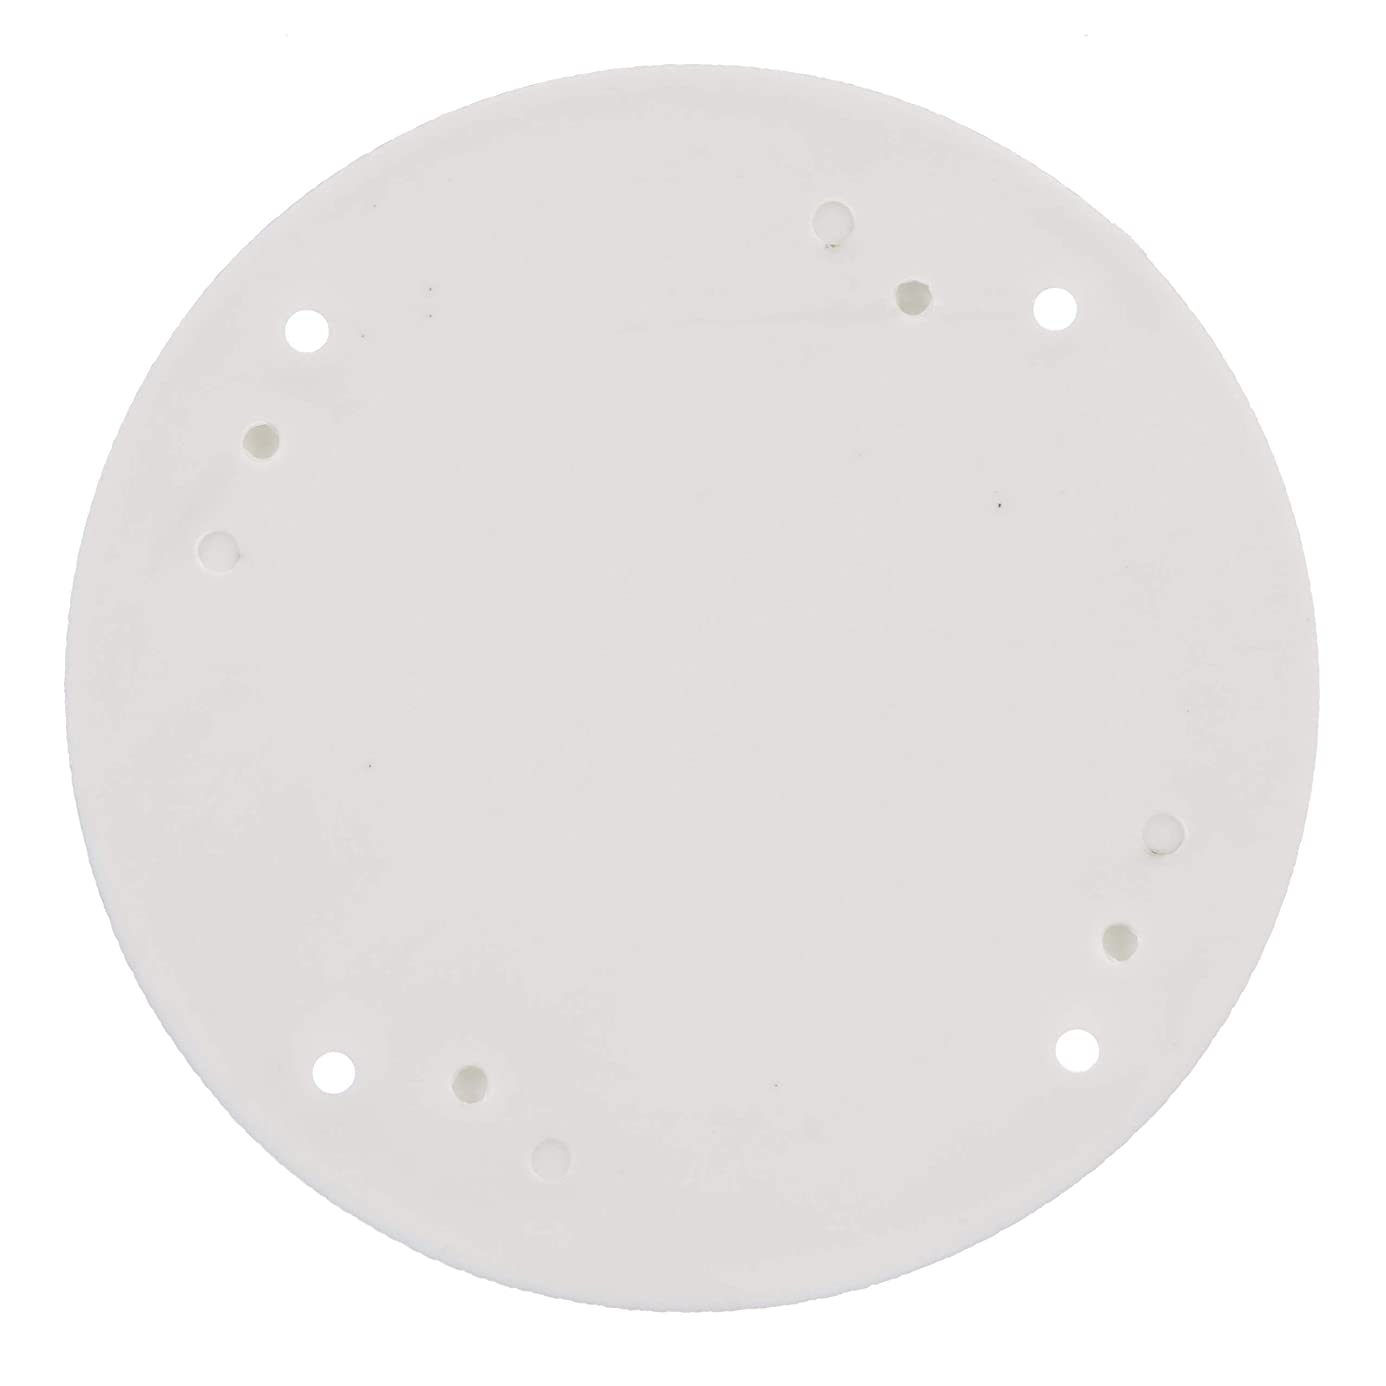 SEACHOICE 39601 Mounted Boat Plate Cover, Arctic White Finish, up to 4 Inches